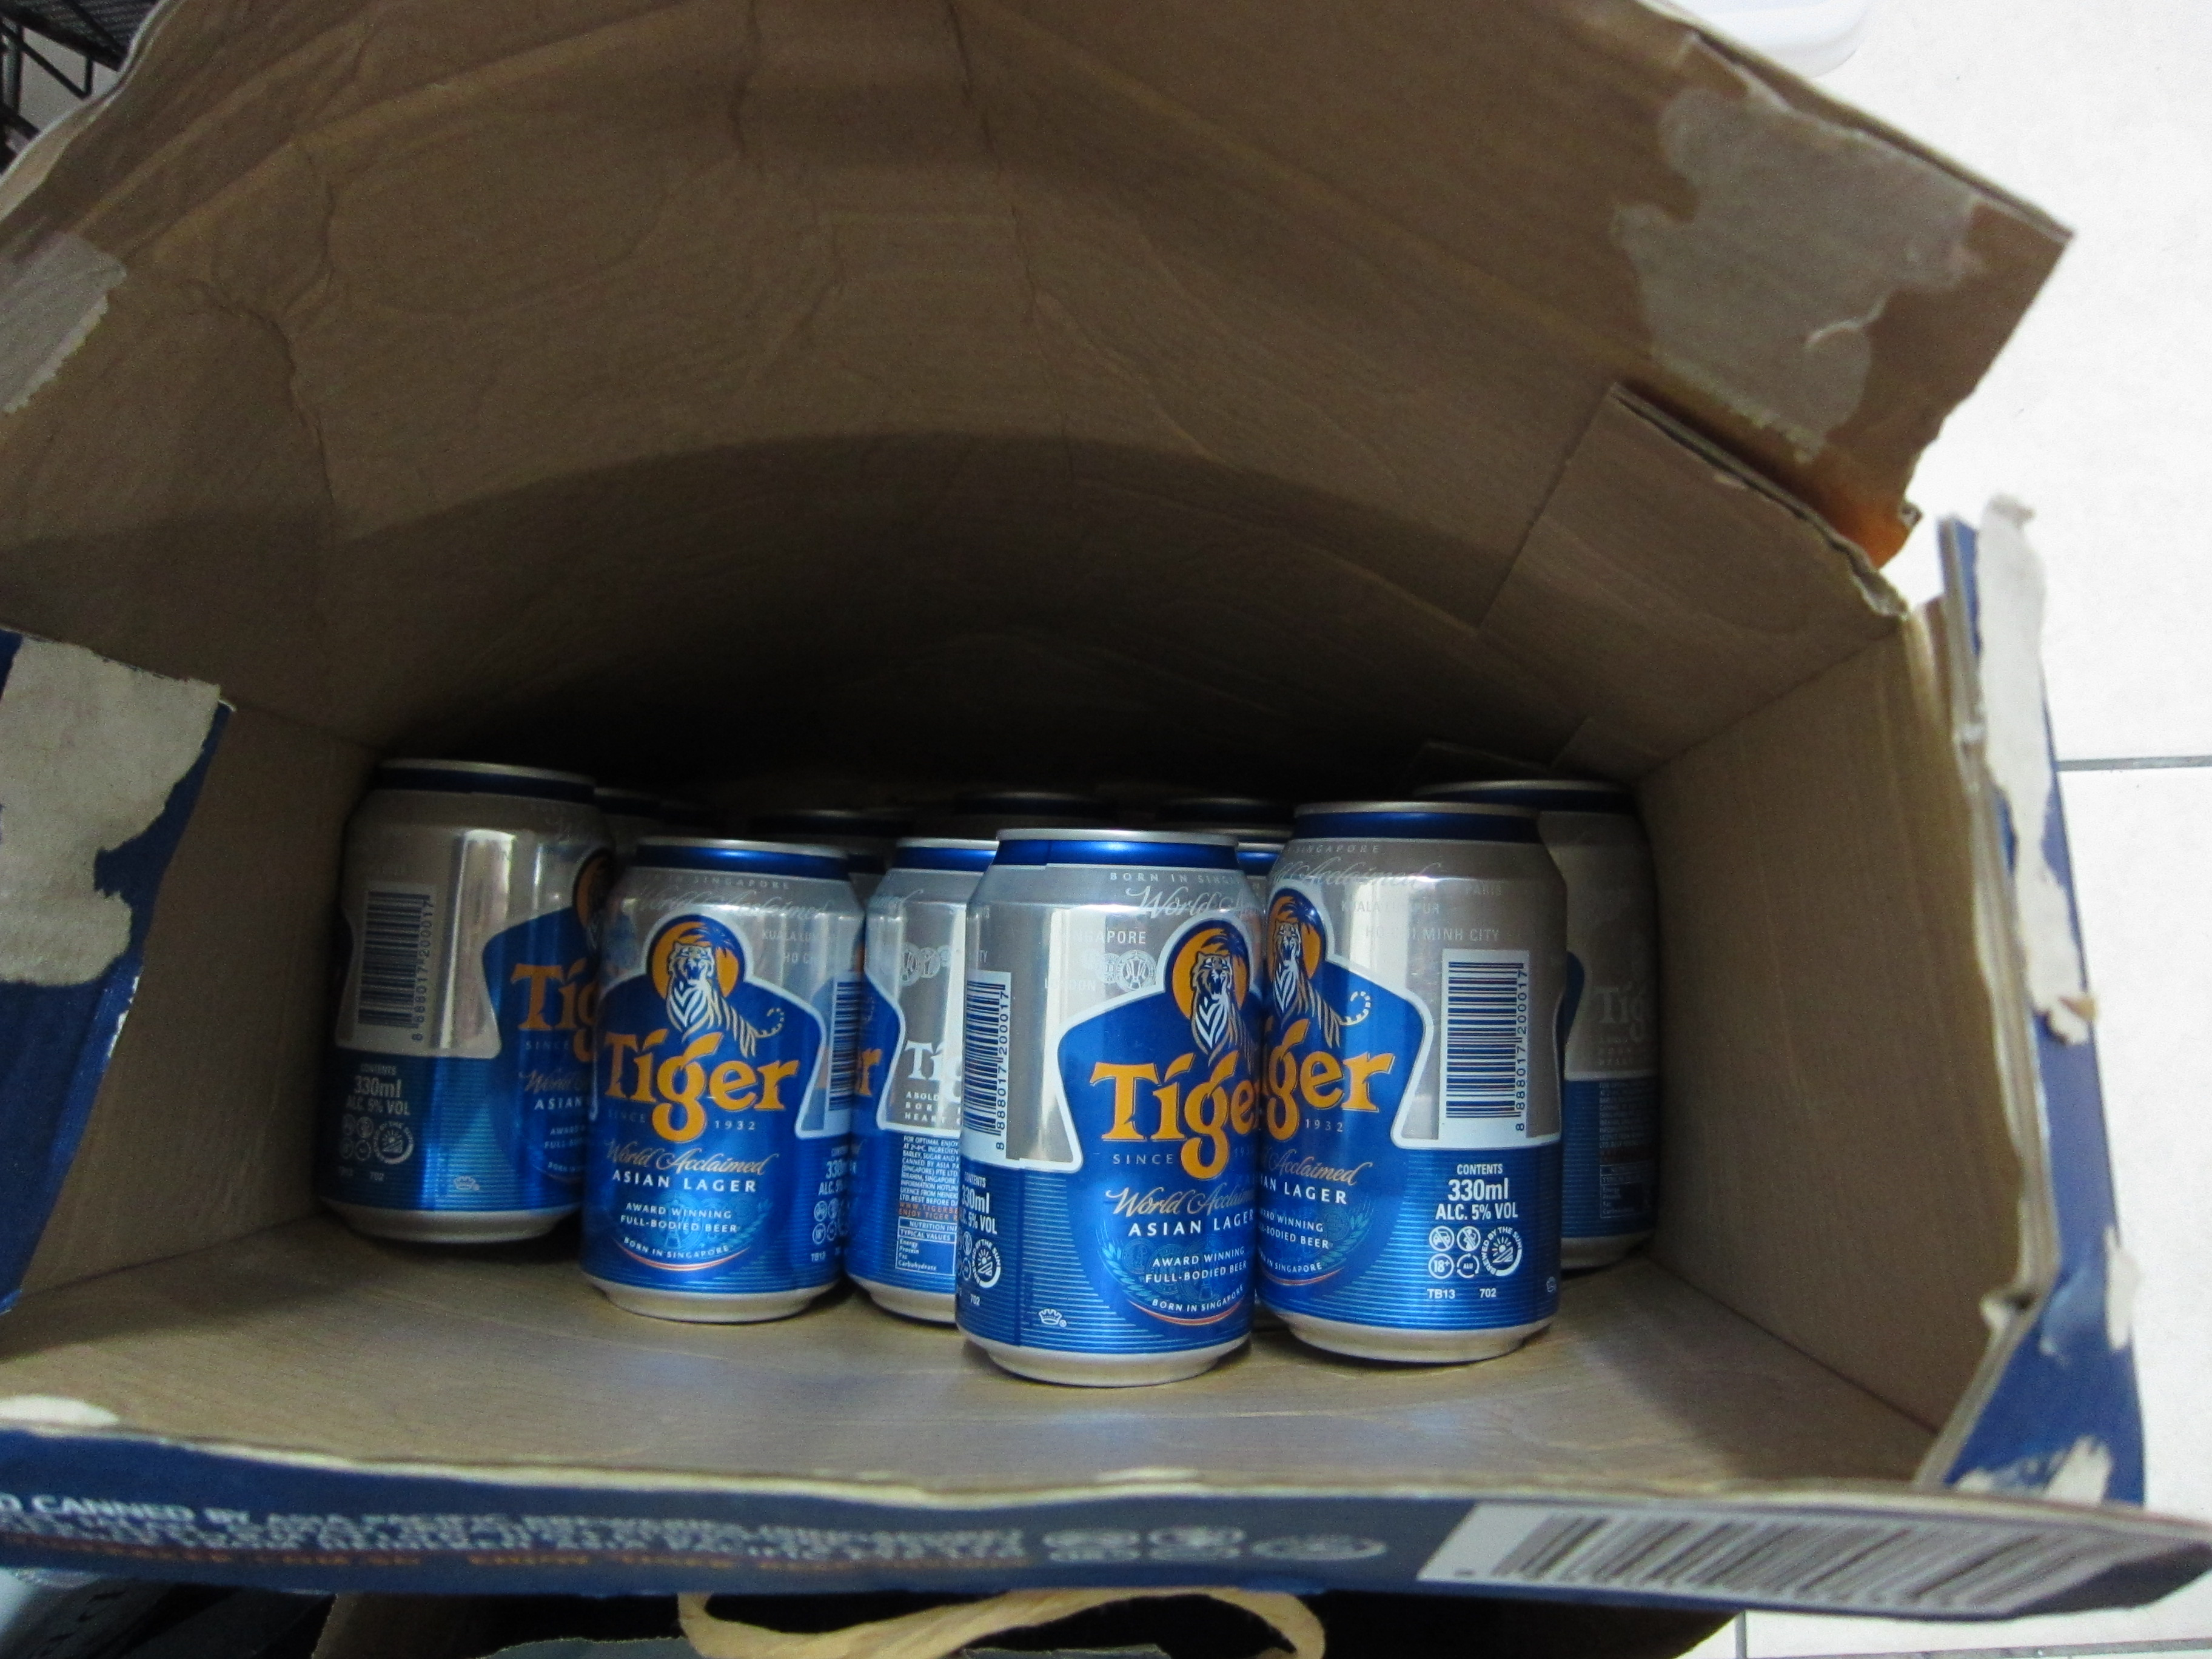 Tiger beer, 17 cans * 330ml